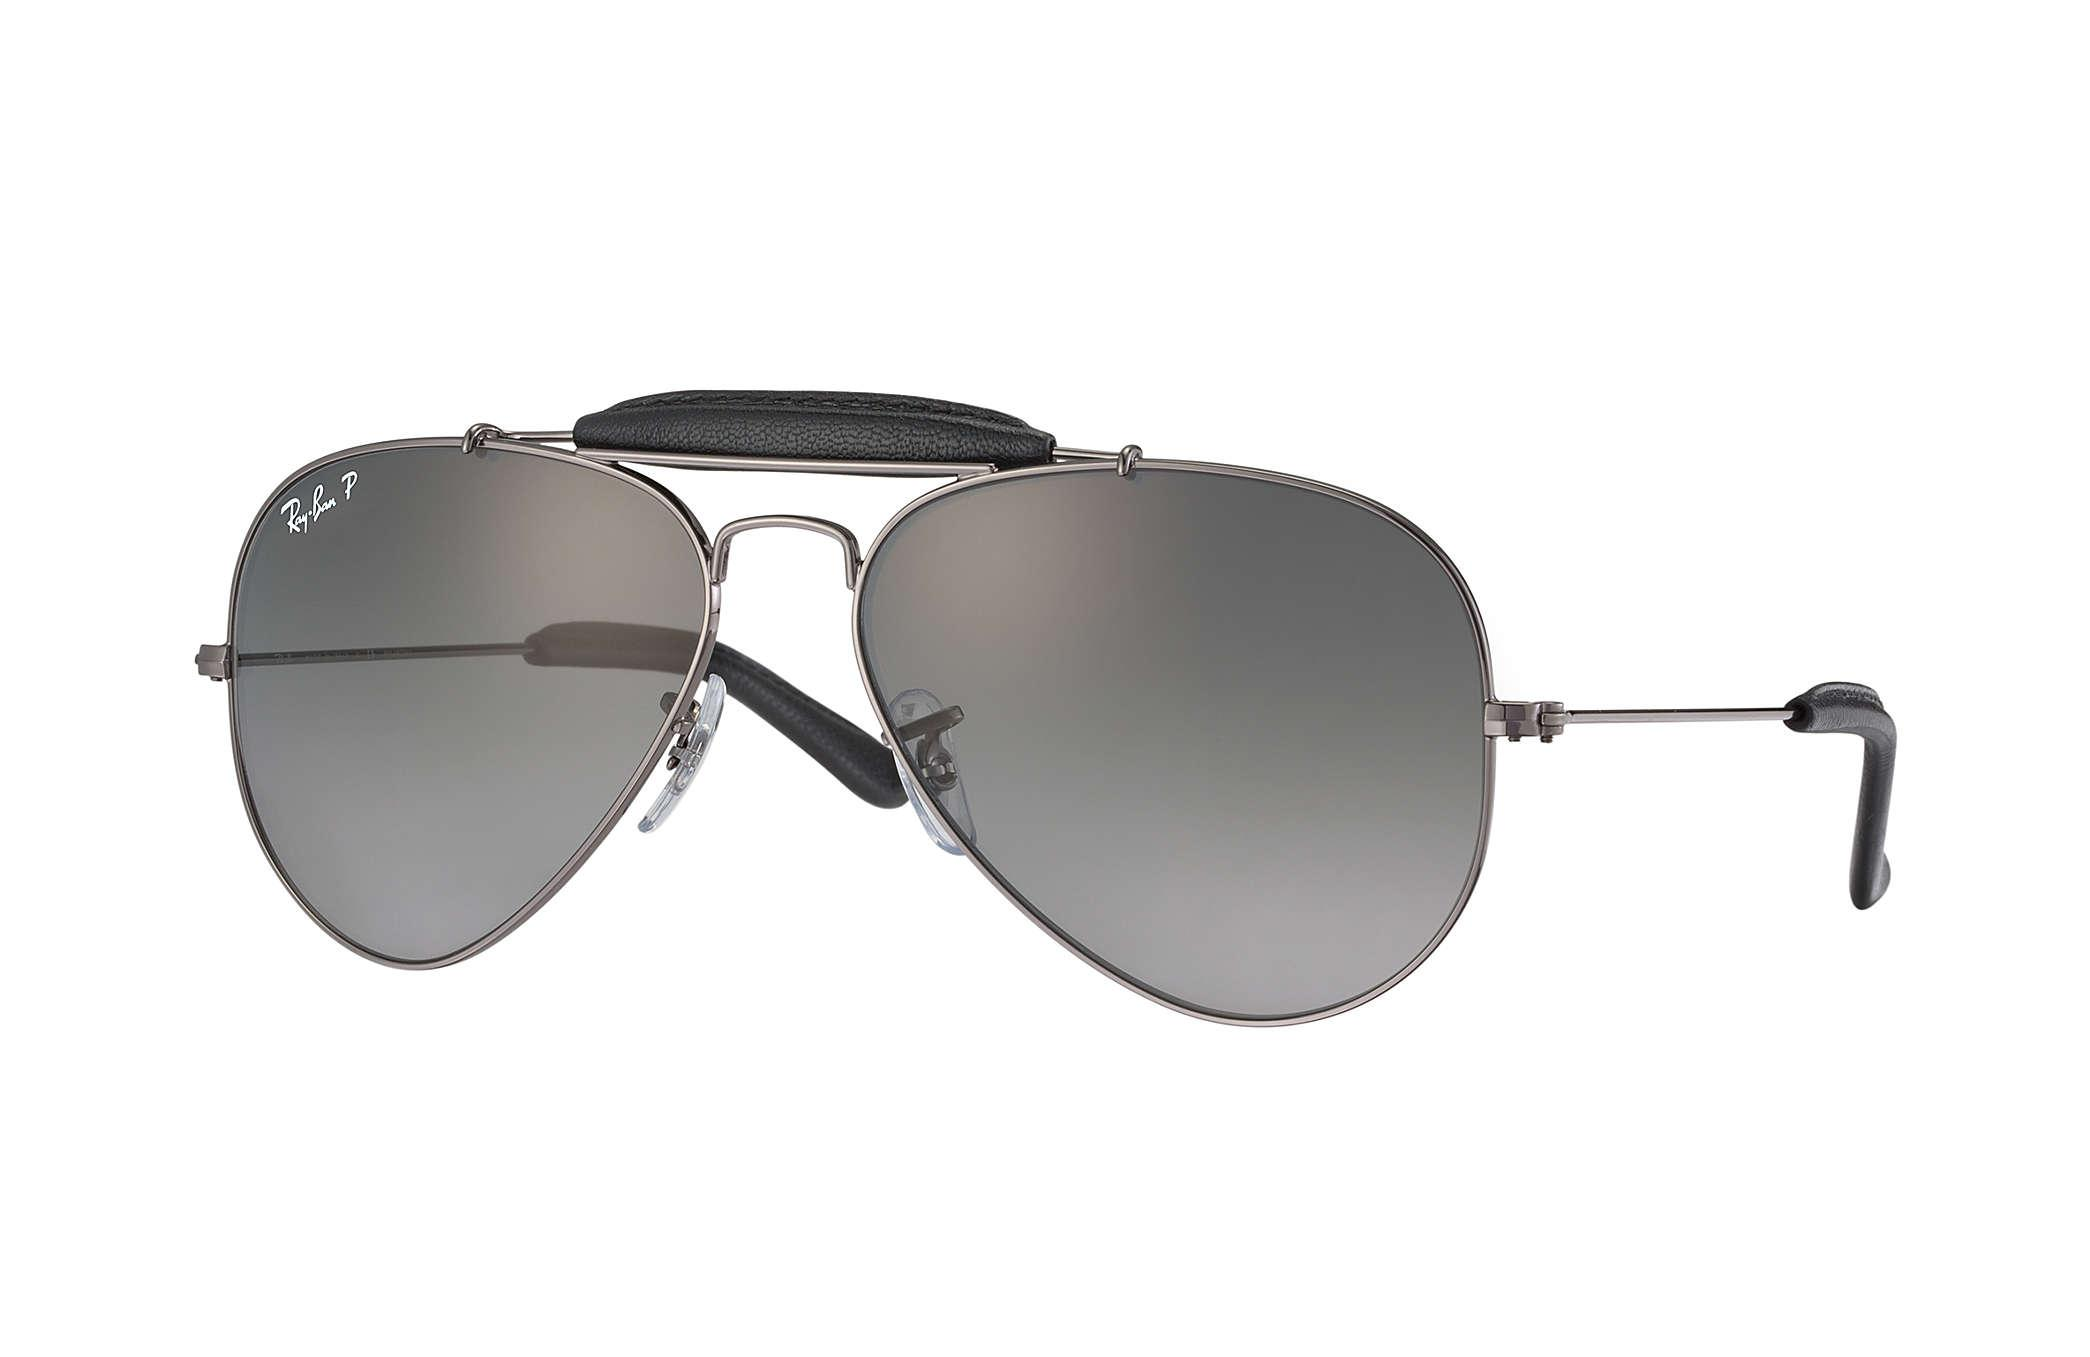 9c5748d95ef Ray-Ban Outdoorsman Craft At Collection in Gray for Men - Lyst